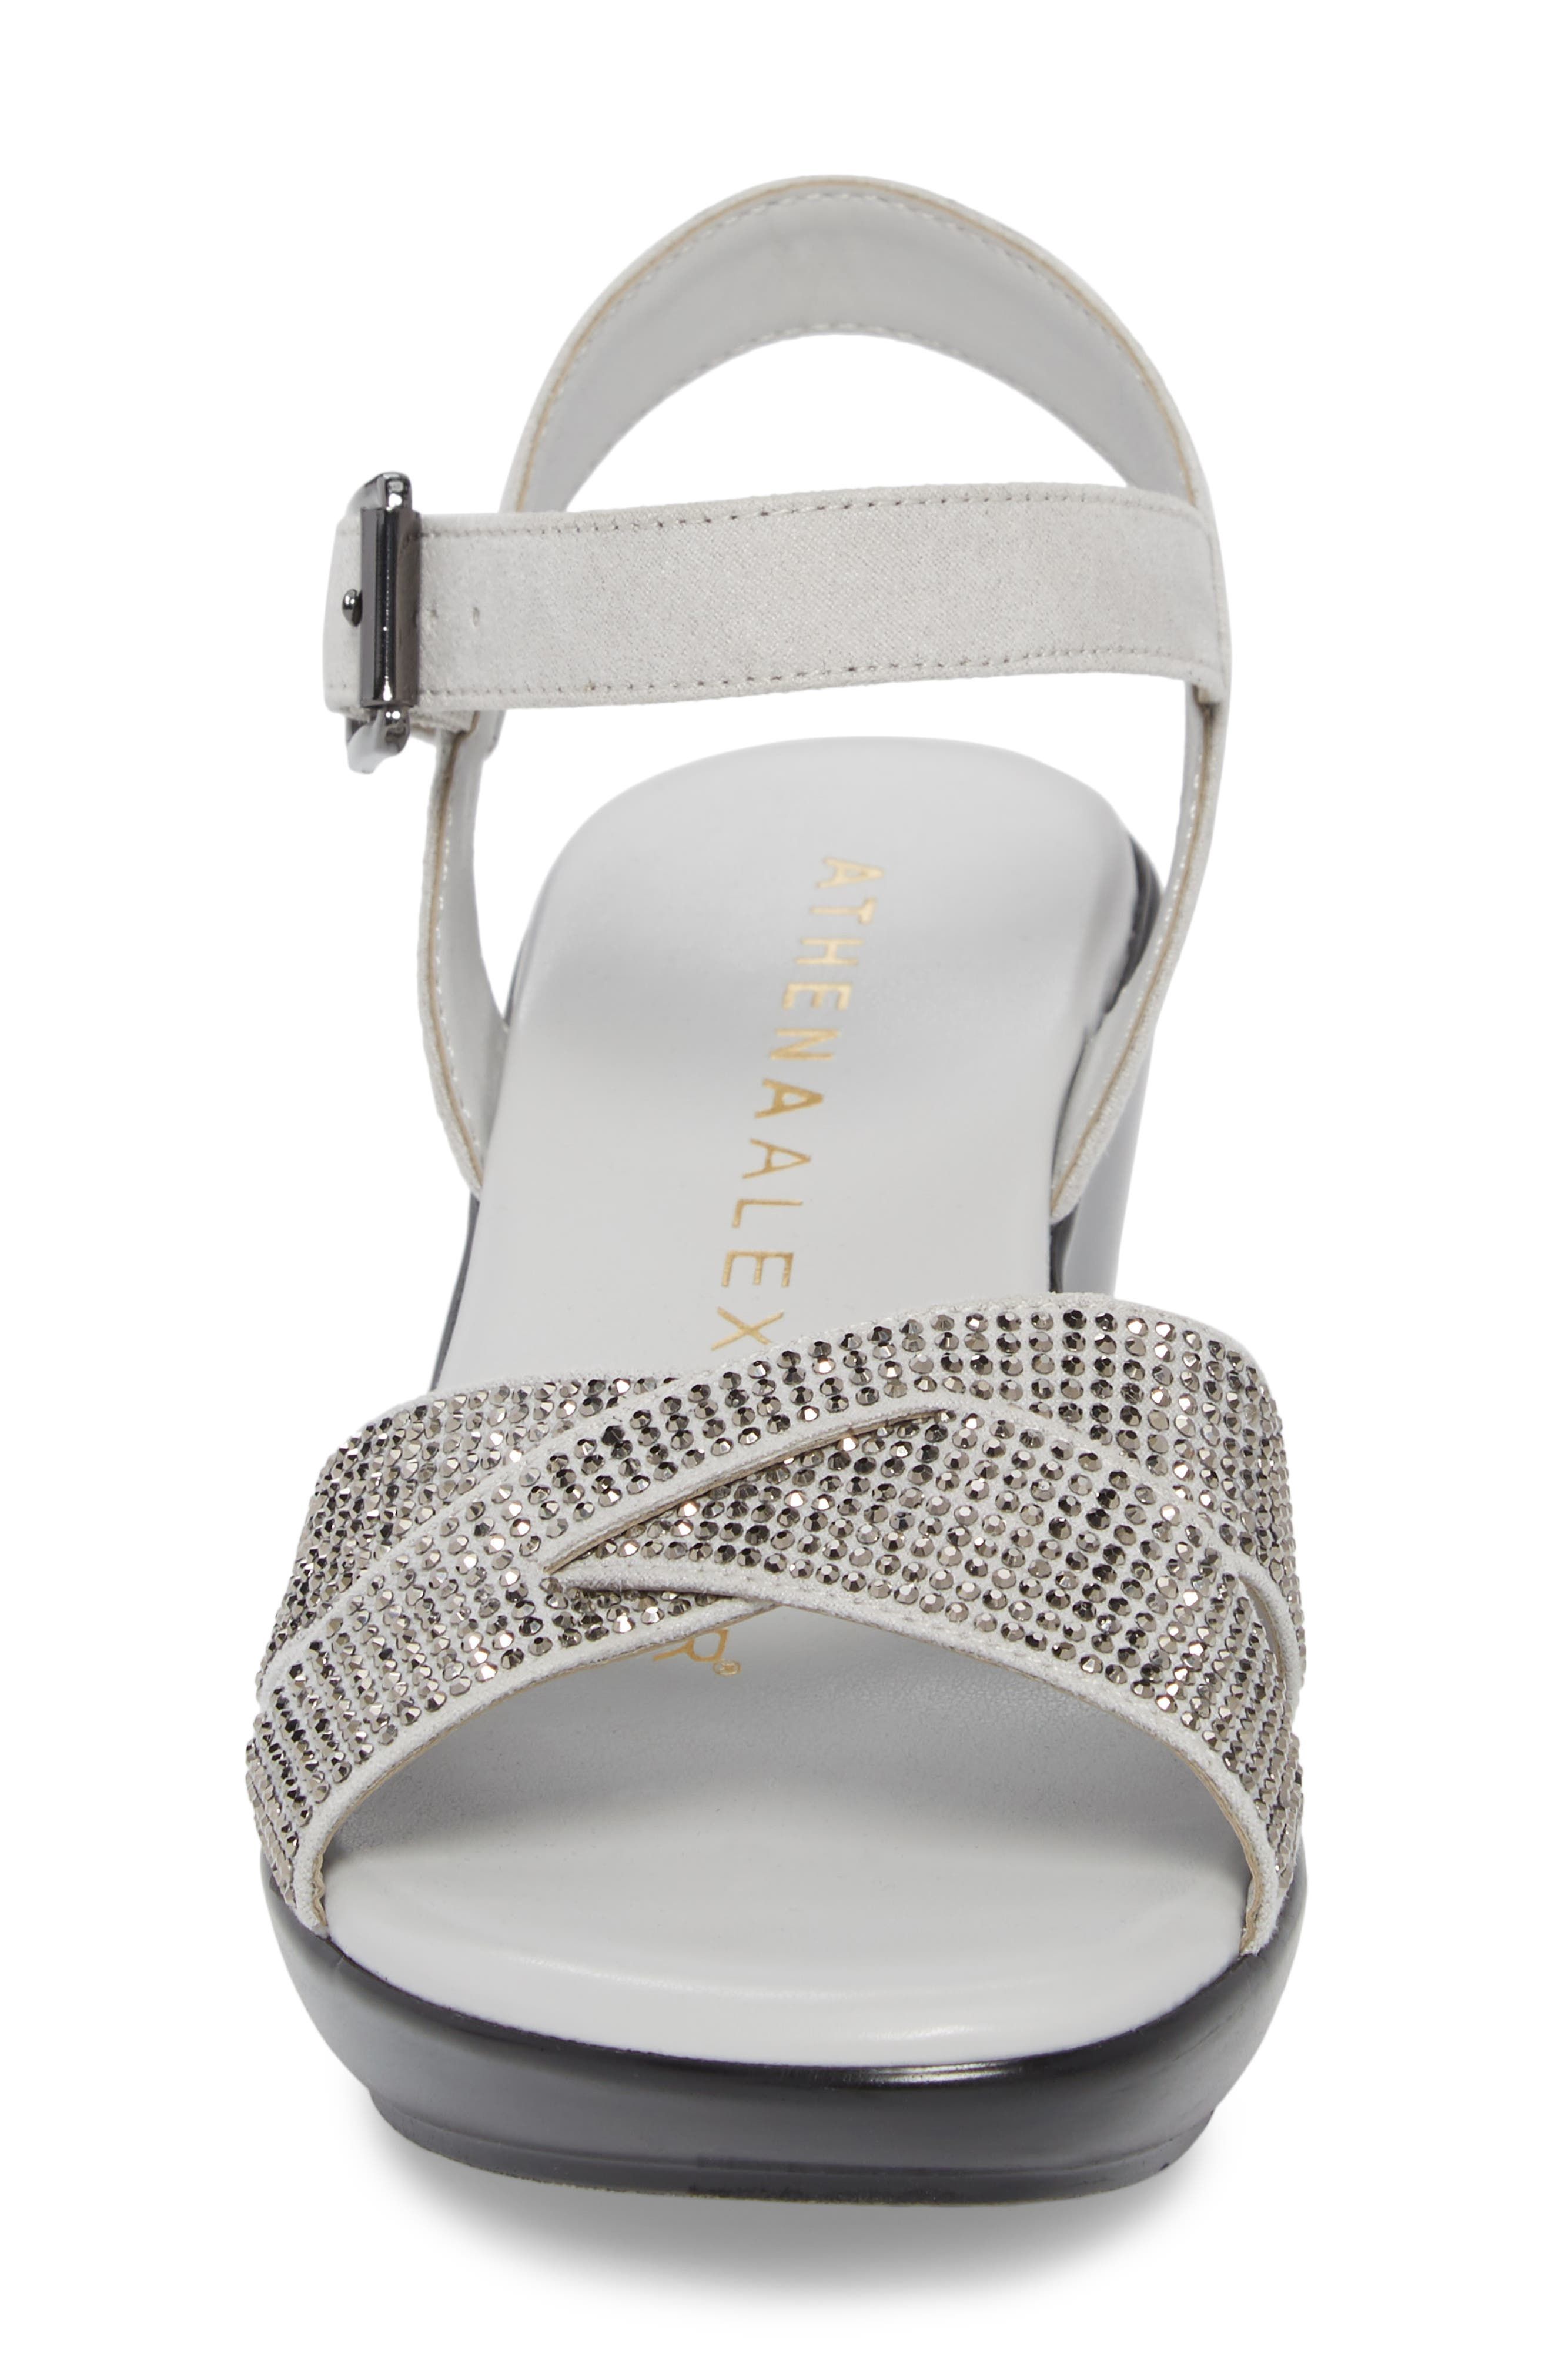 Florence Wedge Sandal,                             Alternate thumbnail 4, color,                             GREY FAUX SUEDE